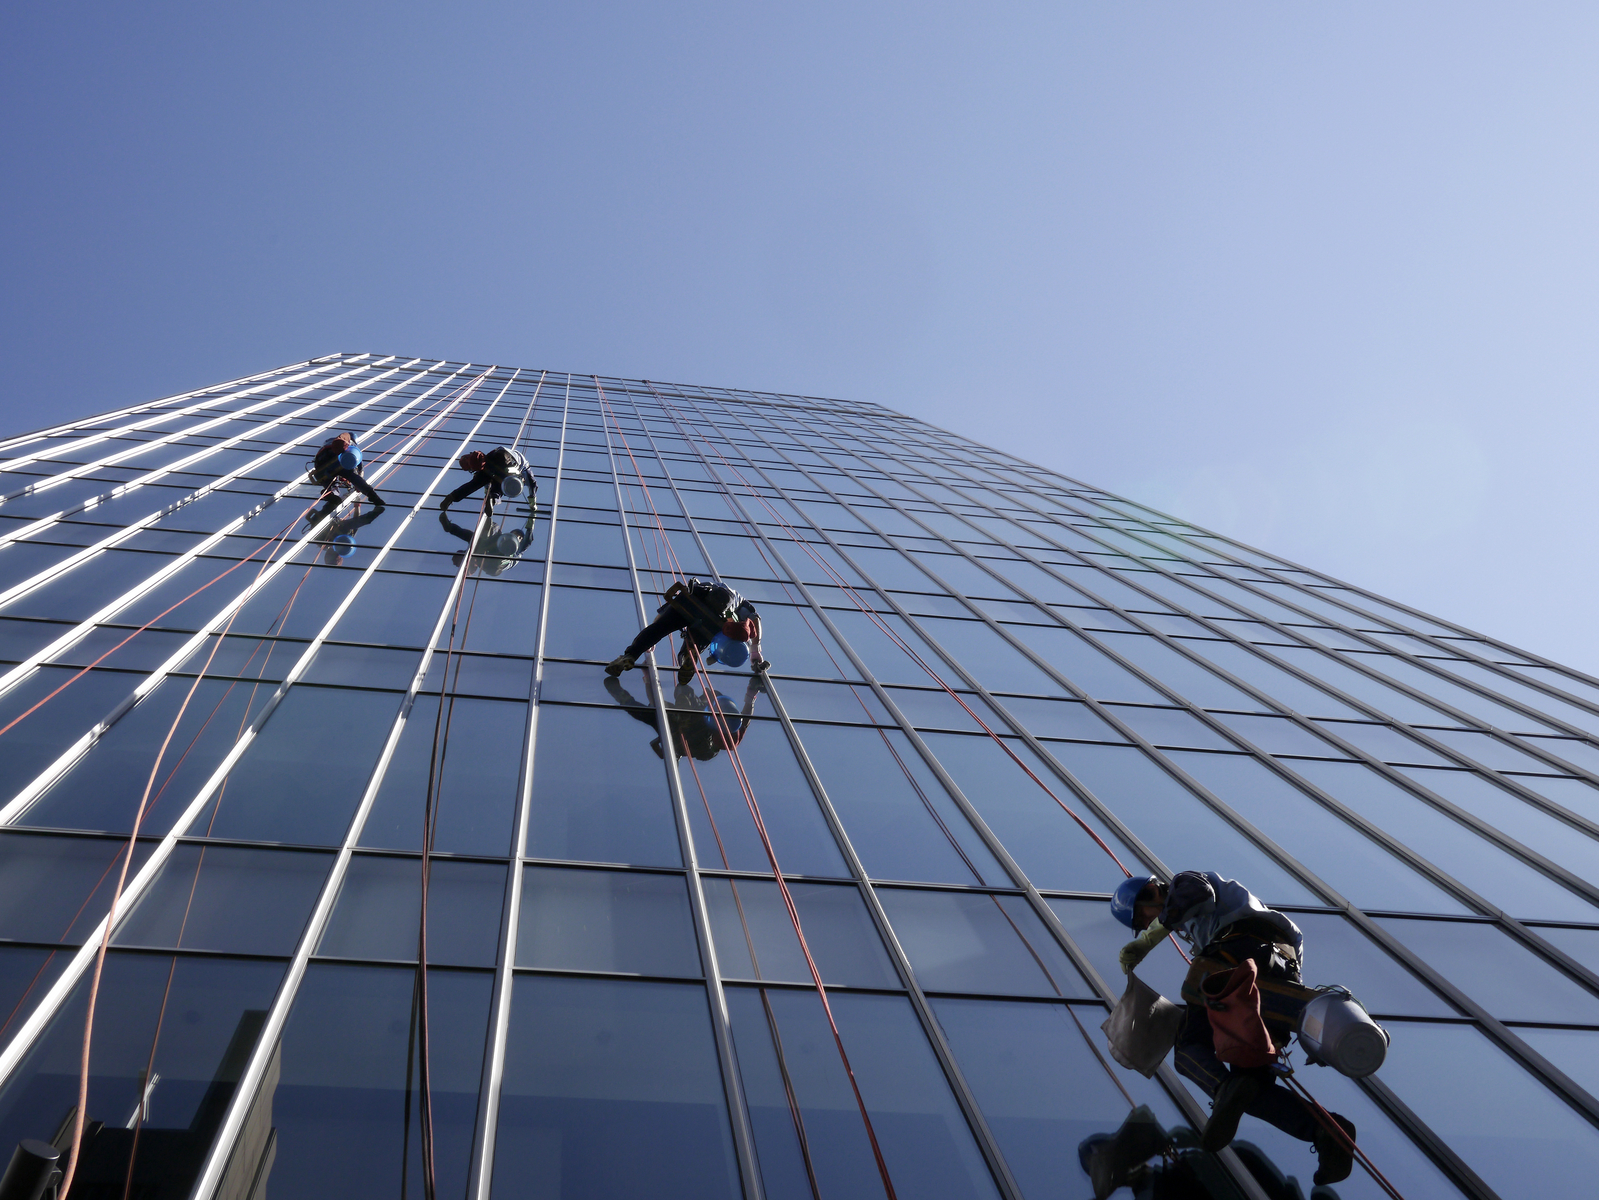 Cleaning windows on the side of a high rise building